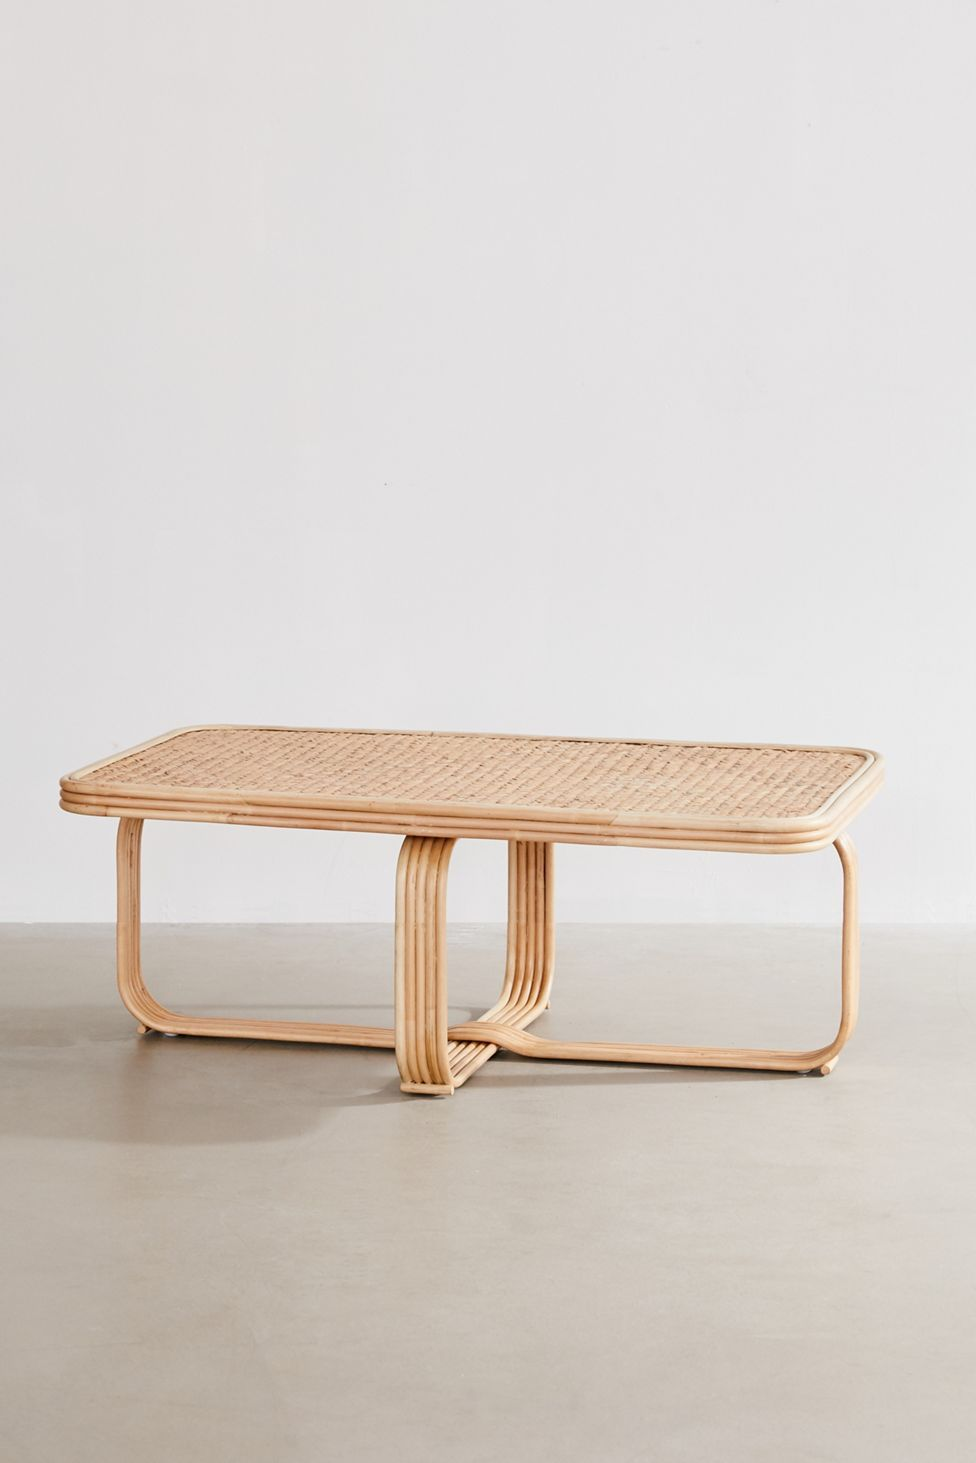 Ria Coffee Table Urban Outfitters Coffee Table Coffee Table Urban Outfitters Coffee Table Design [ 1463 x 976 Pixel ]